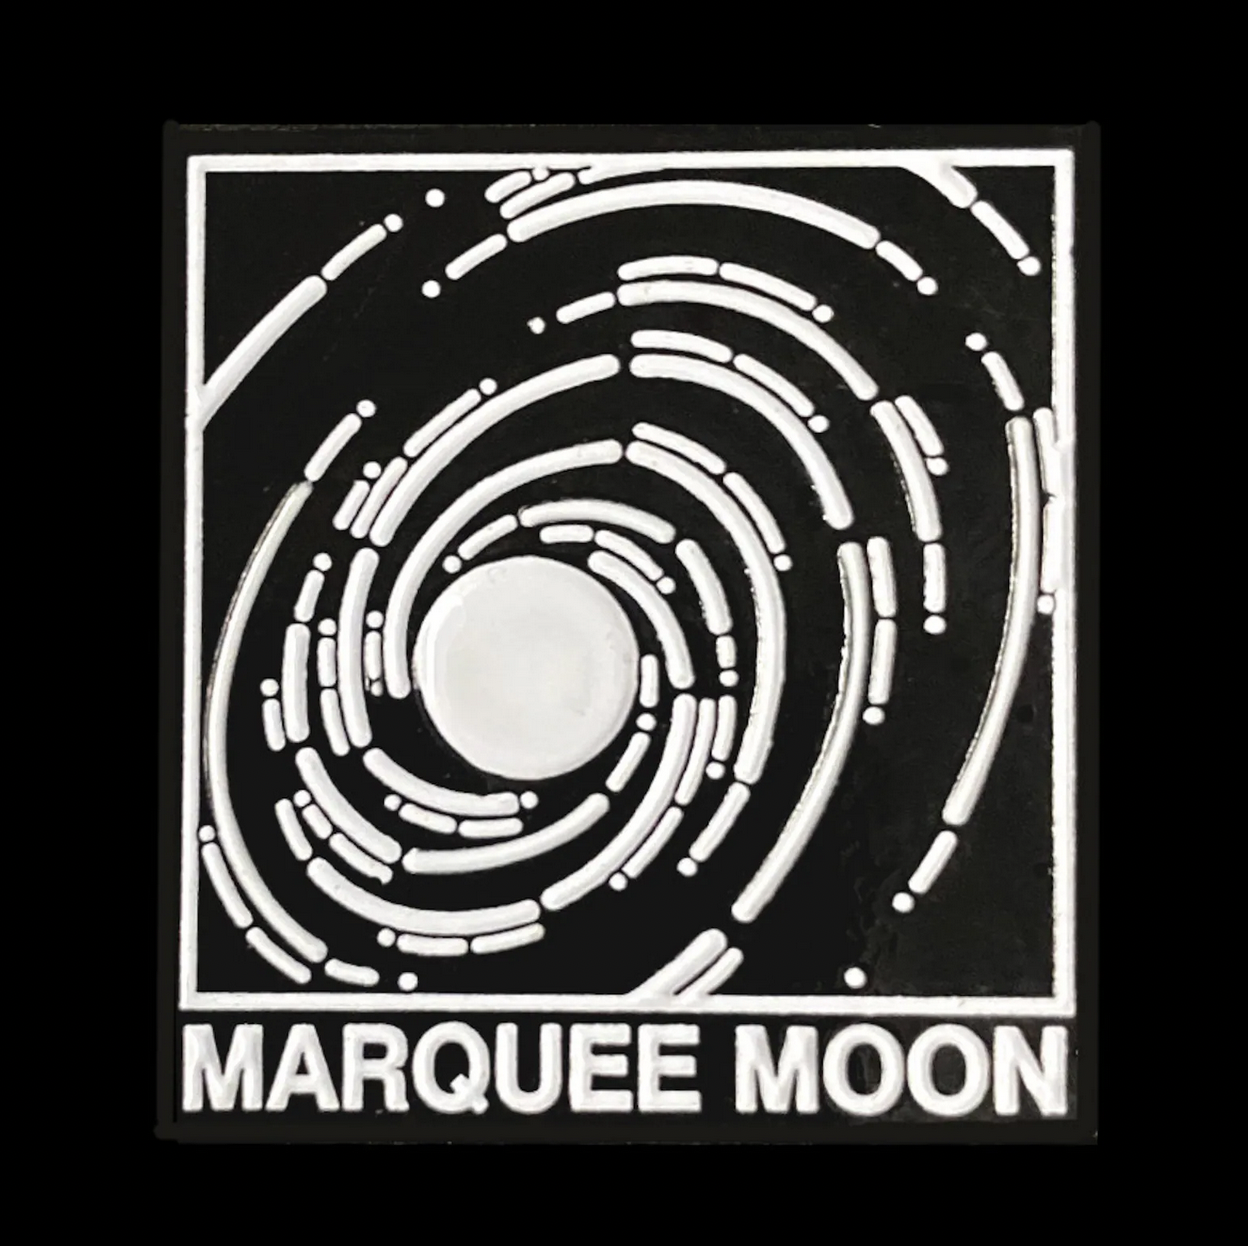 Pin - Marquee Moon (Television)